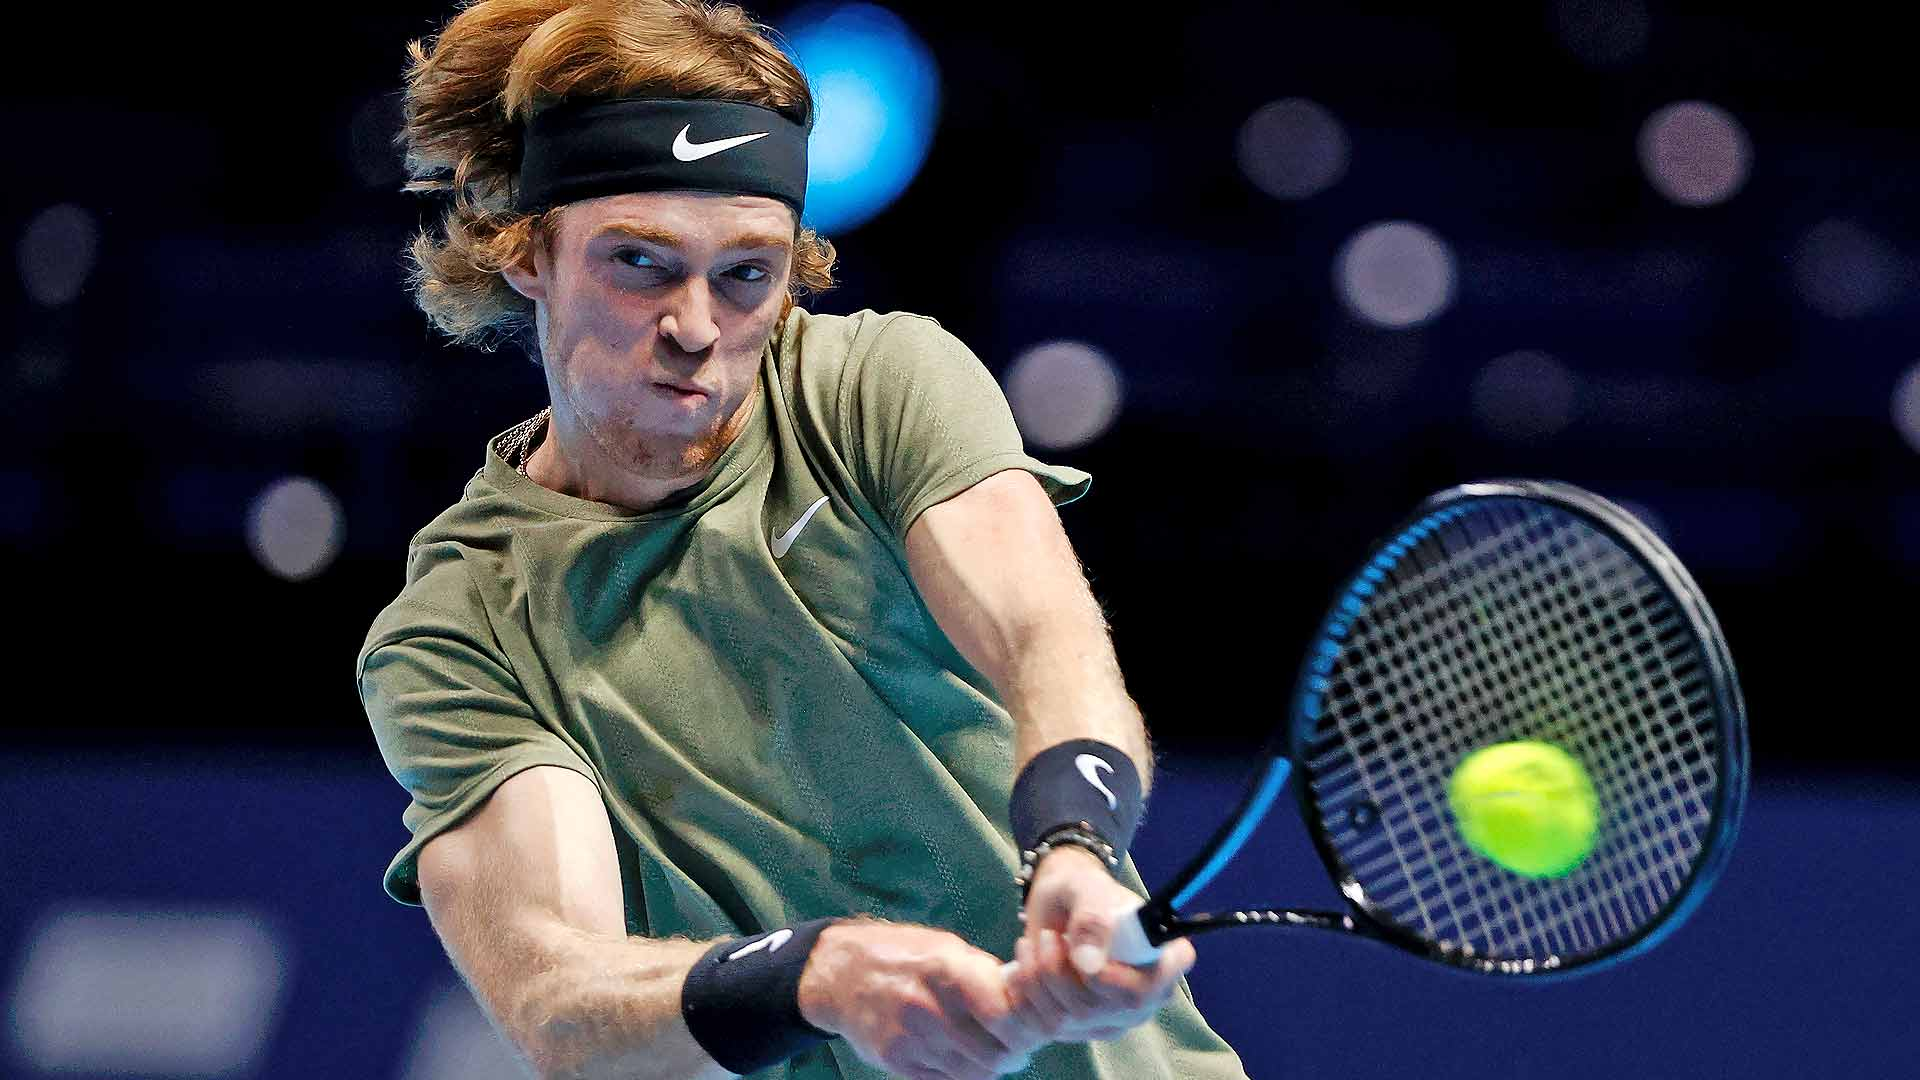 <a href='https://www.atptour.com/en/players/andrey-rublev/re44/overview'>Andrey Rublev</a>